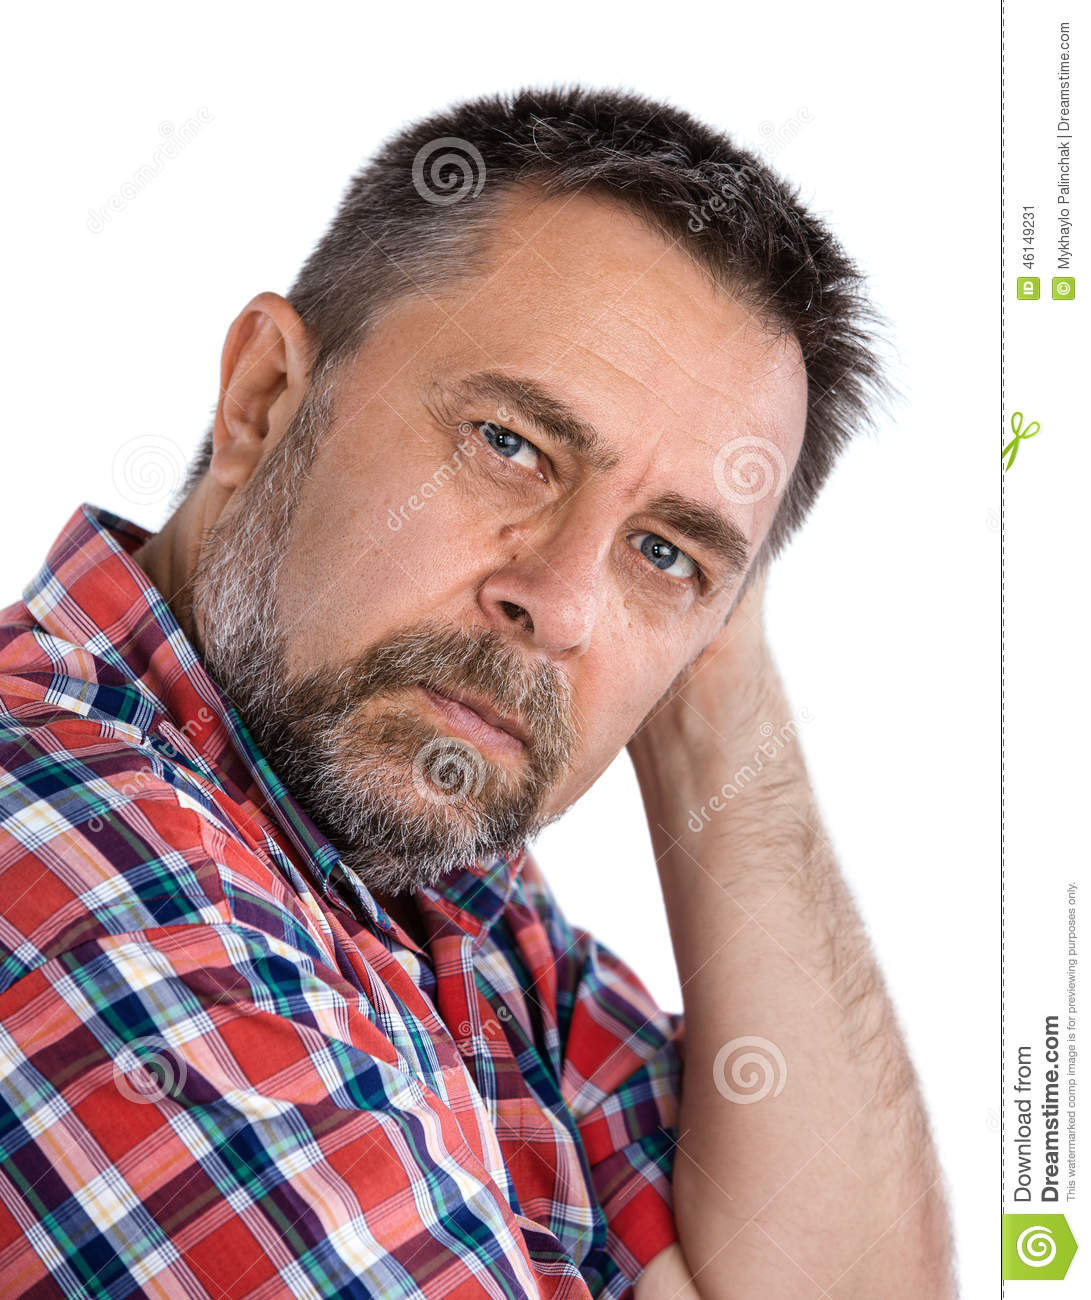 Middle Aged Man Stock Photo - Image: 46149231